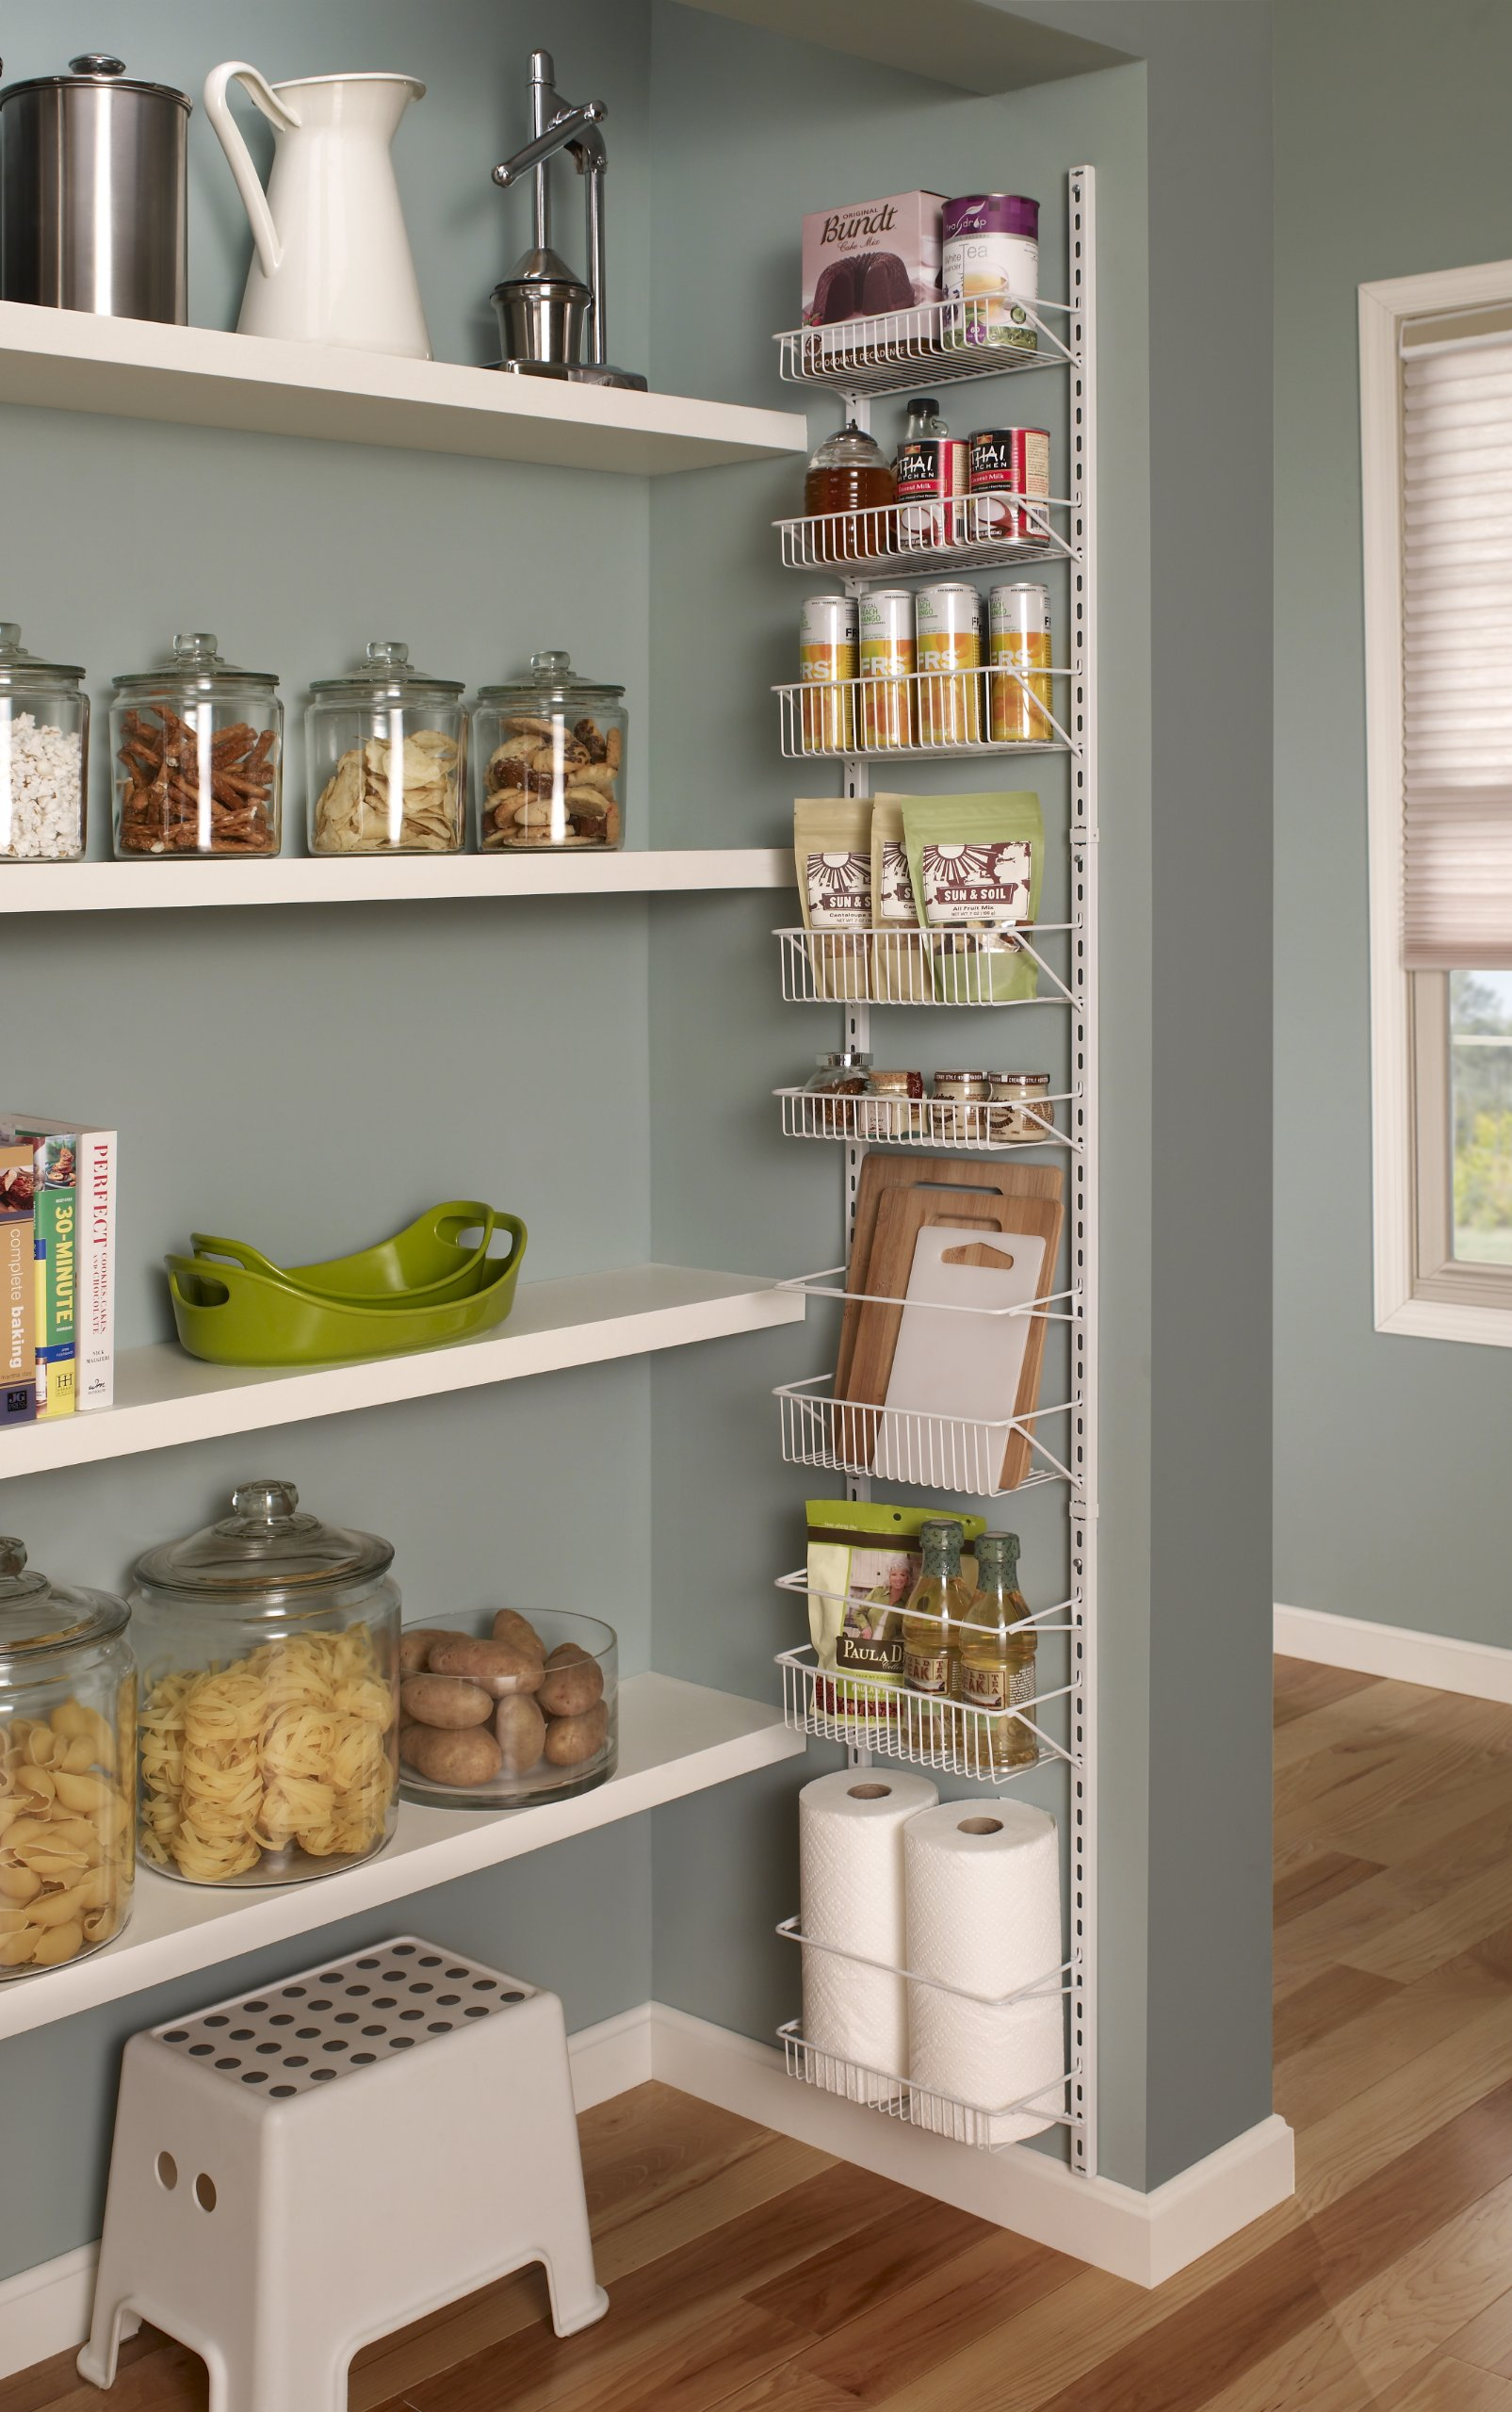 ClosetMaid 1231 Adjustable 8-Tier Wall and Door Rack, 77-Inch Height X 12-Inch Wide,white 4 Store and organize items of various sizes. Easily reposition baskets to accommodate tall and short items. Close wire spacing on baskets keeps items from tilting. Wall and over-the-door solution is perfect for kitchen and pantry organization.